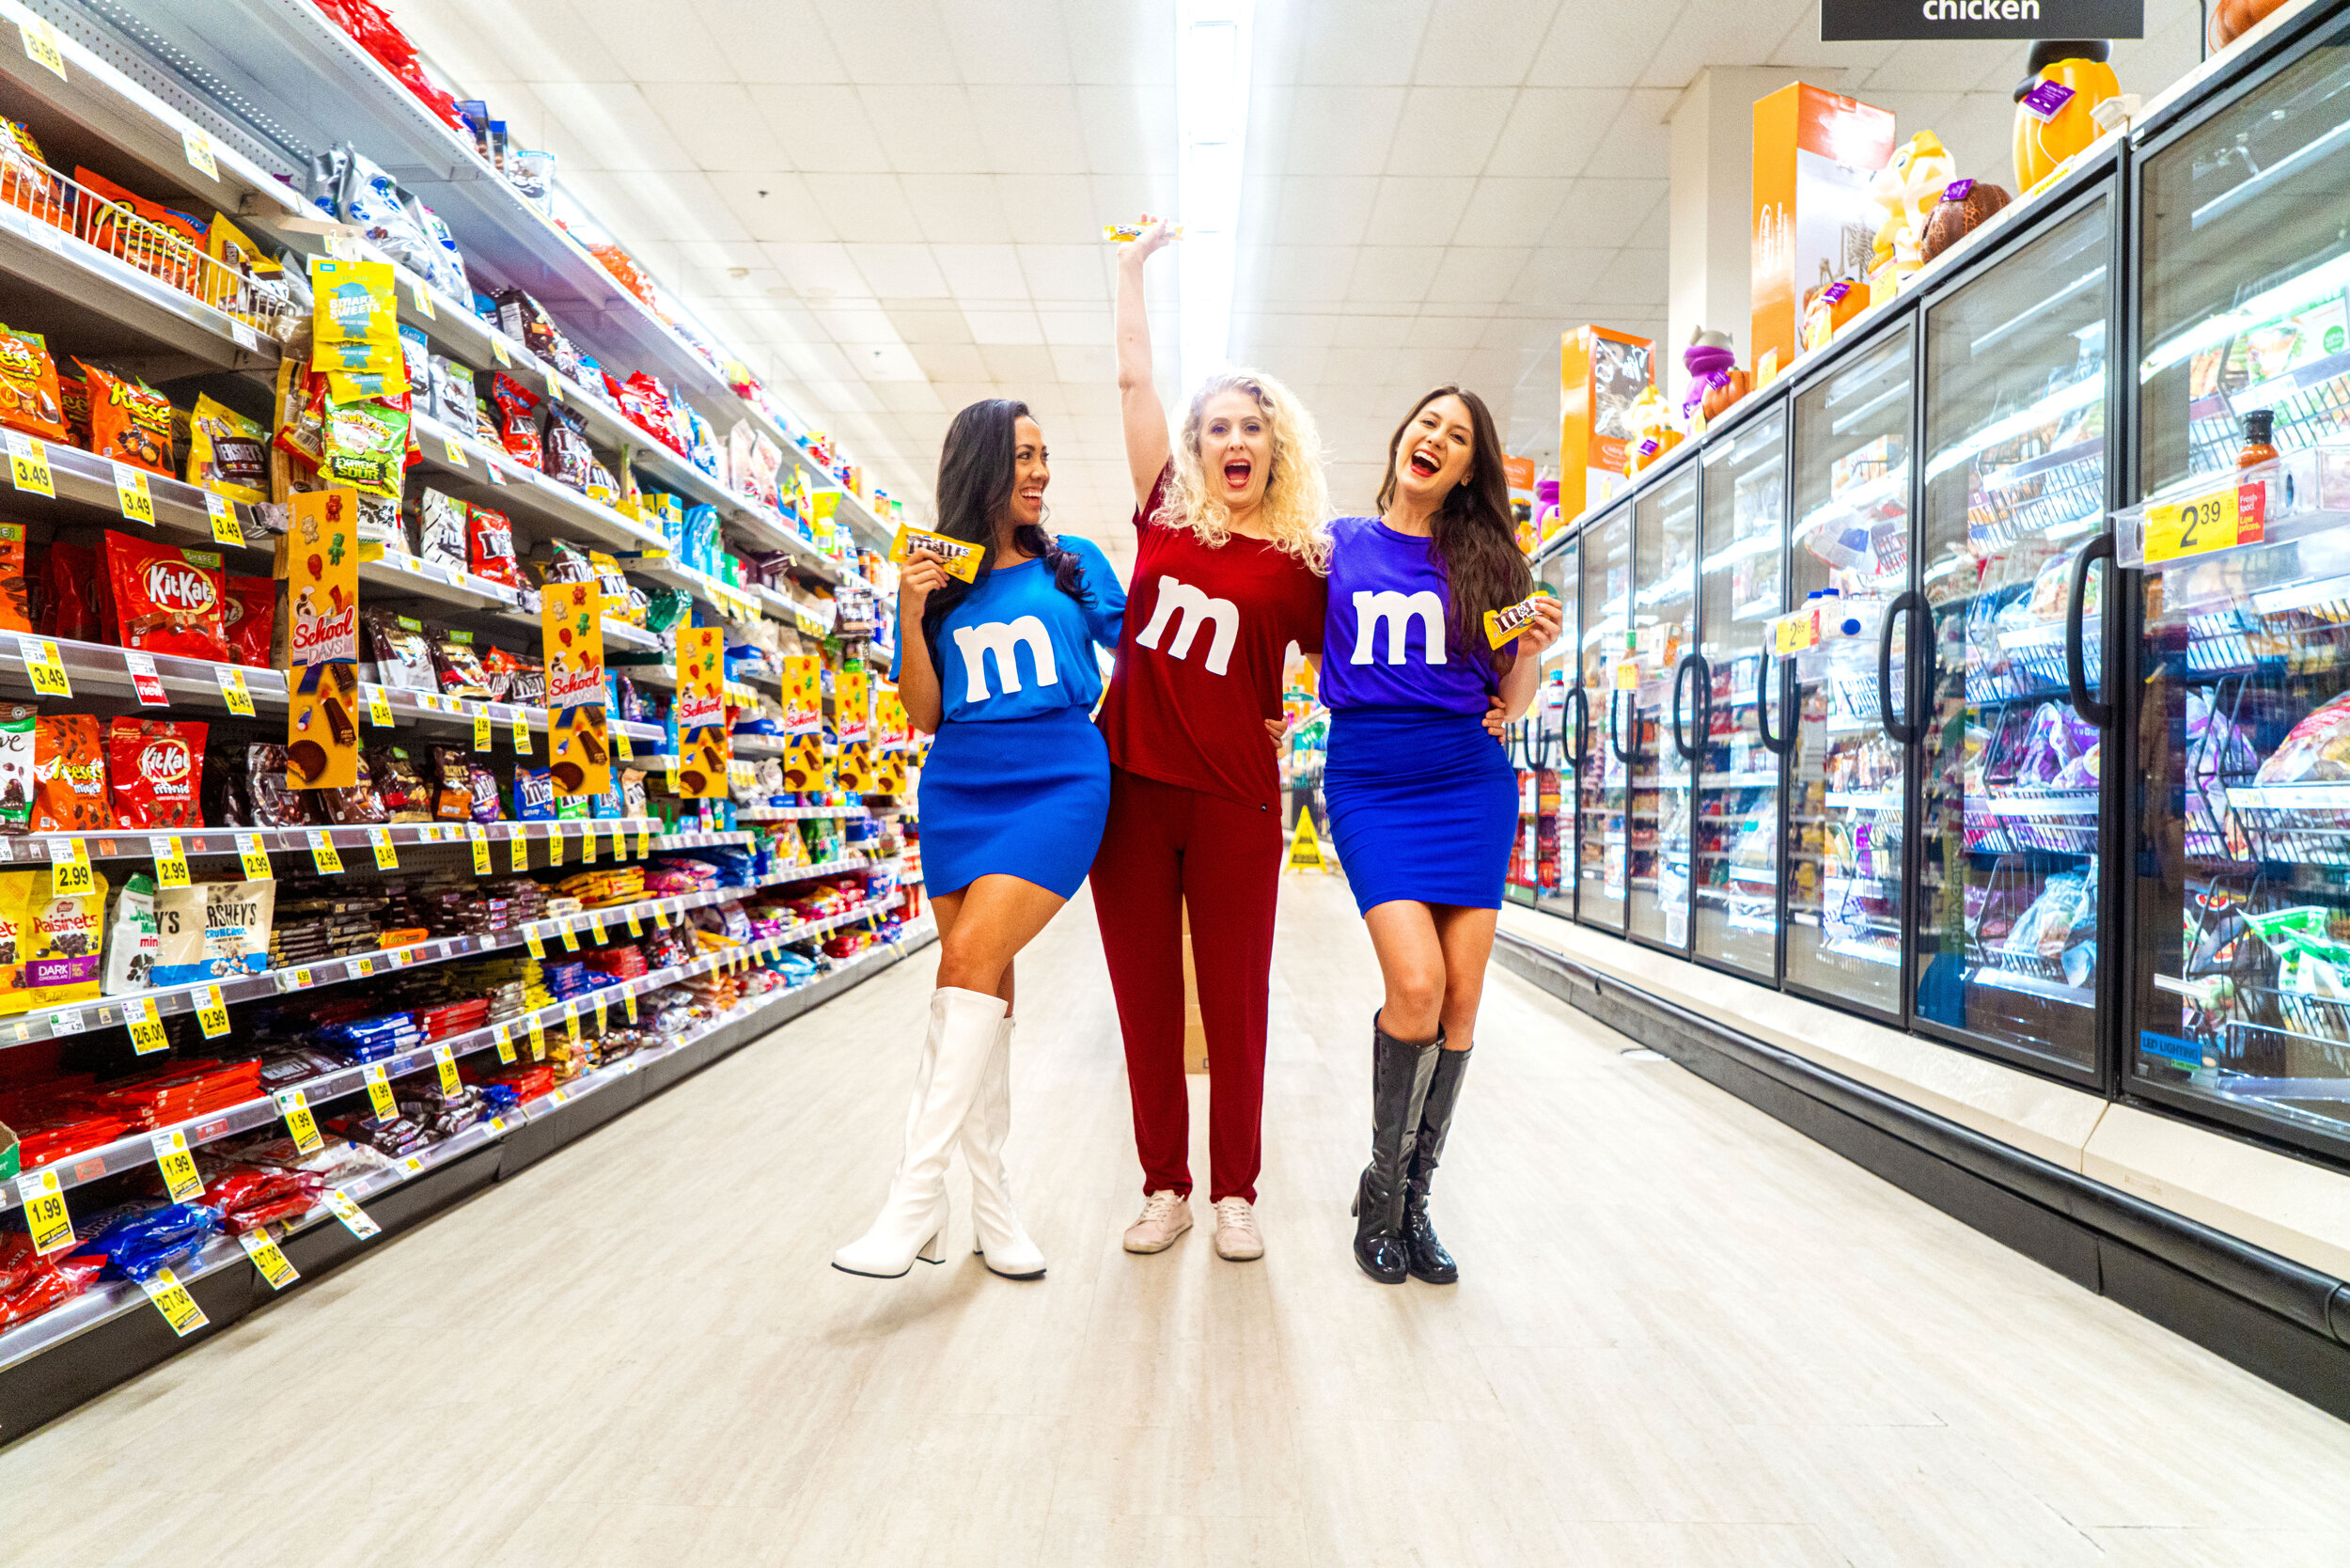 M&M's - BRB just melting over how cute this costume is. Get a few of your friends together, coordinate colors (no I wanna be the blue one!) Cut a few m's out of white paper and shop our colorful, soft-as-heck, loungewear tops to complete the lewk.